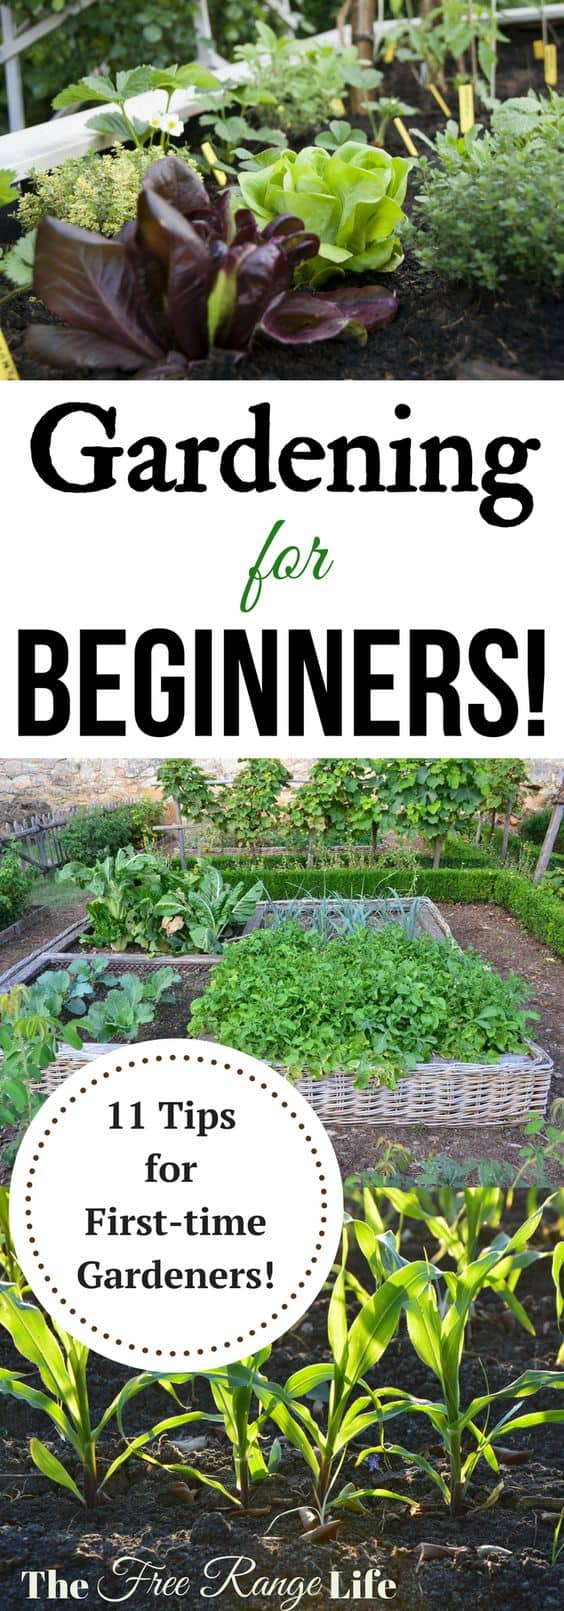 Gardening for Beginners: 11 Tips for Beginning Gardeners! Get ready to grow your best garden ever!